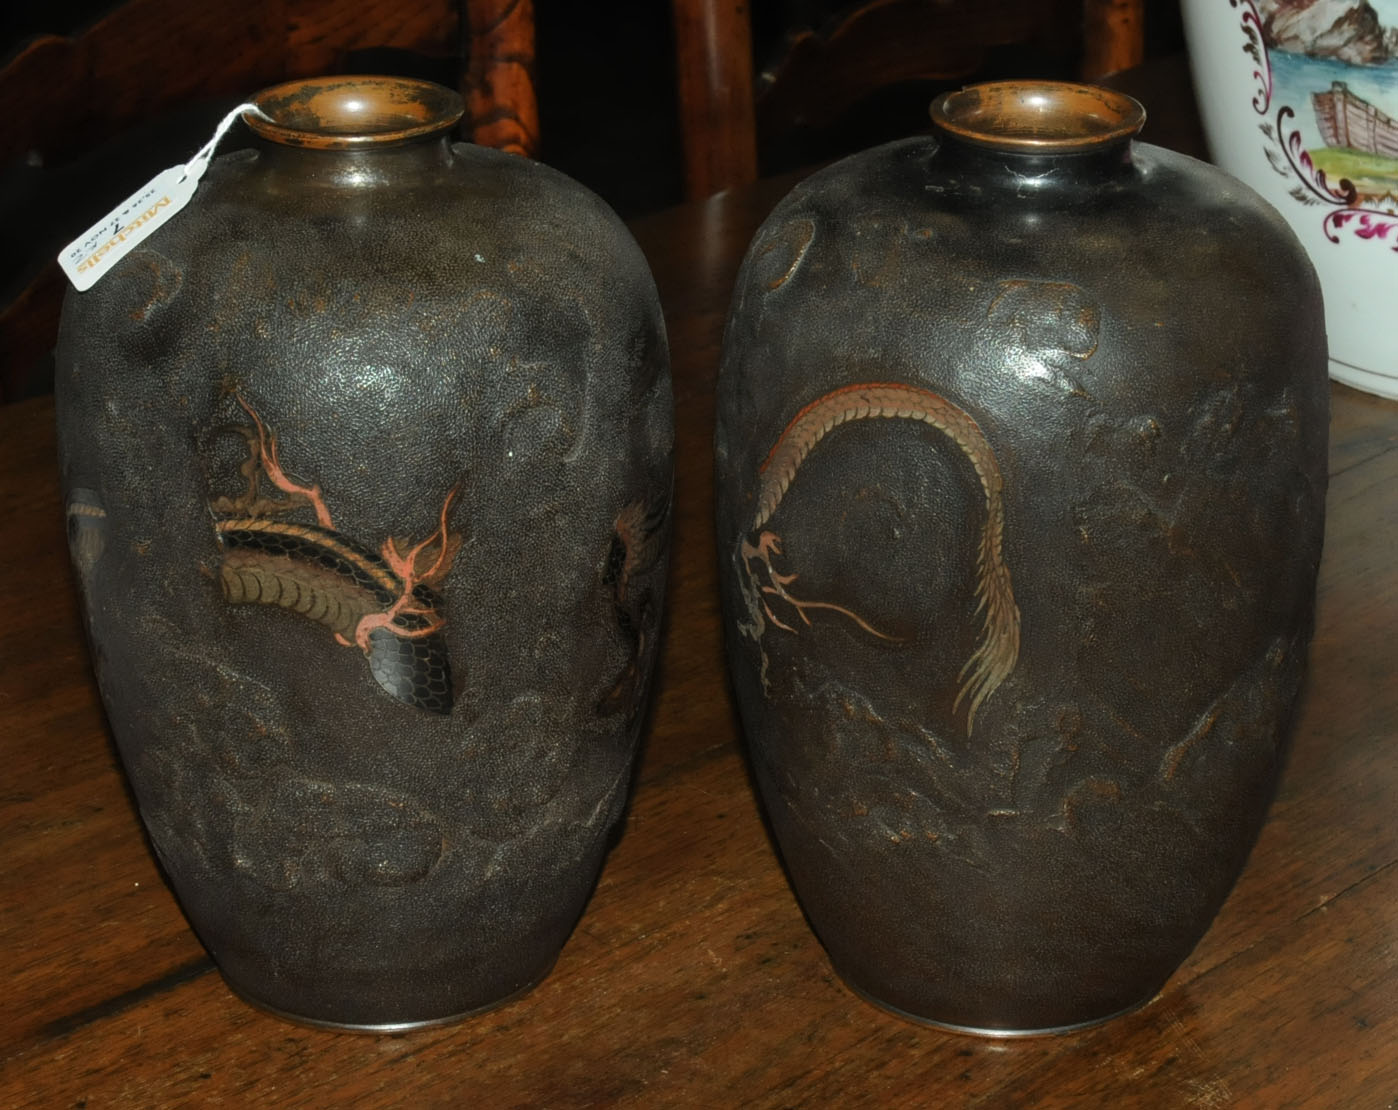 A pair of Japanese bronze vases, decorated with chasing dragons. Height 26 cm. - Image 3 of 11